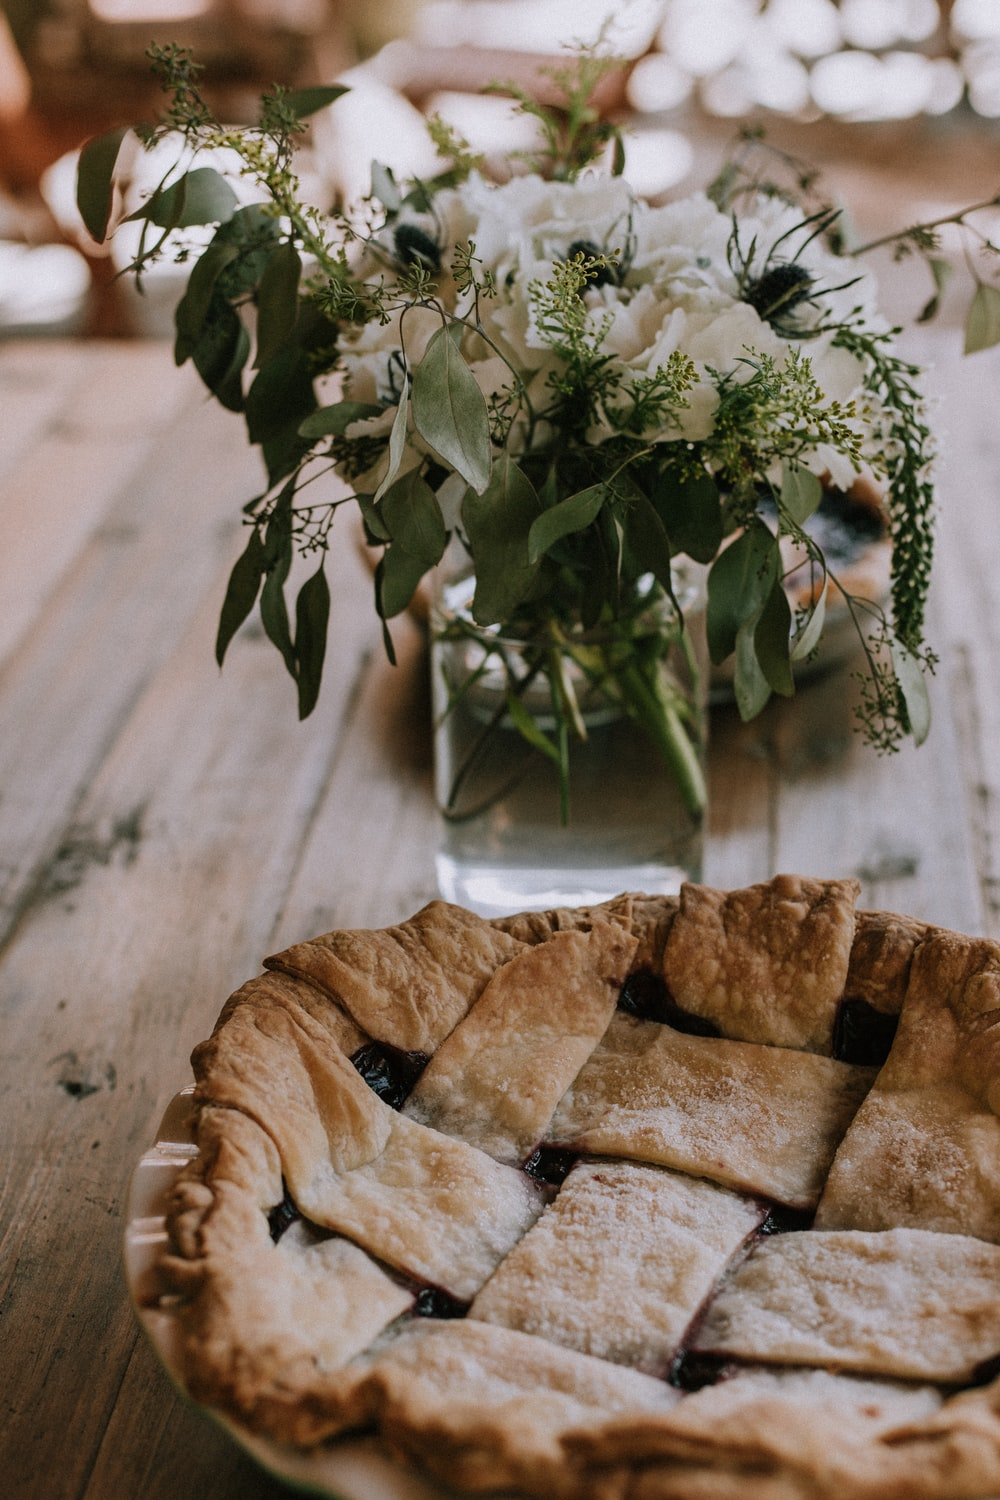 selective focus photography of baked bread beside white petaled flower